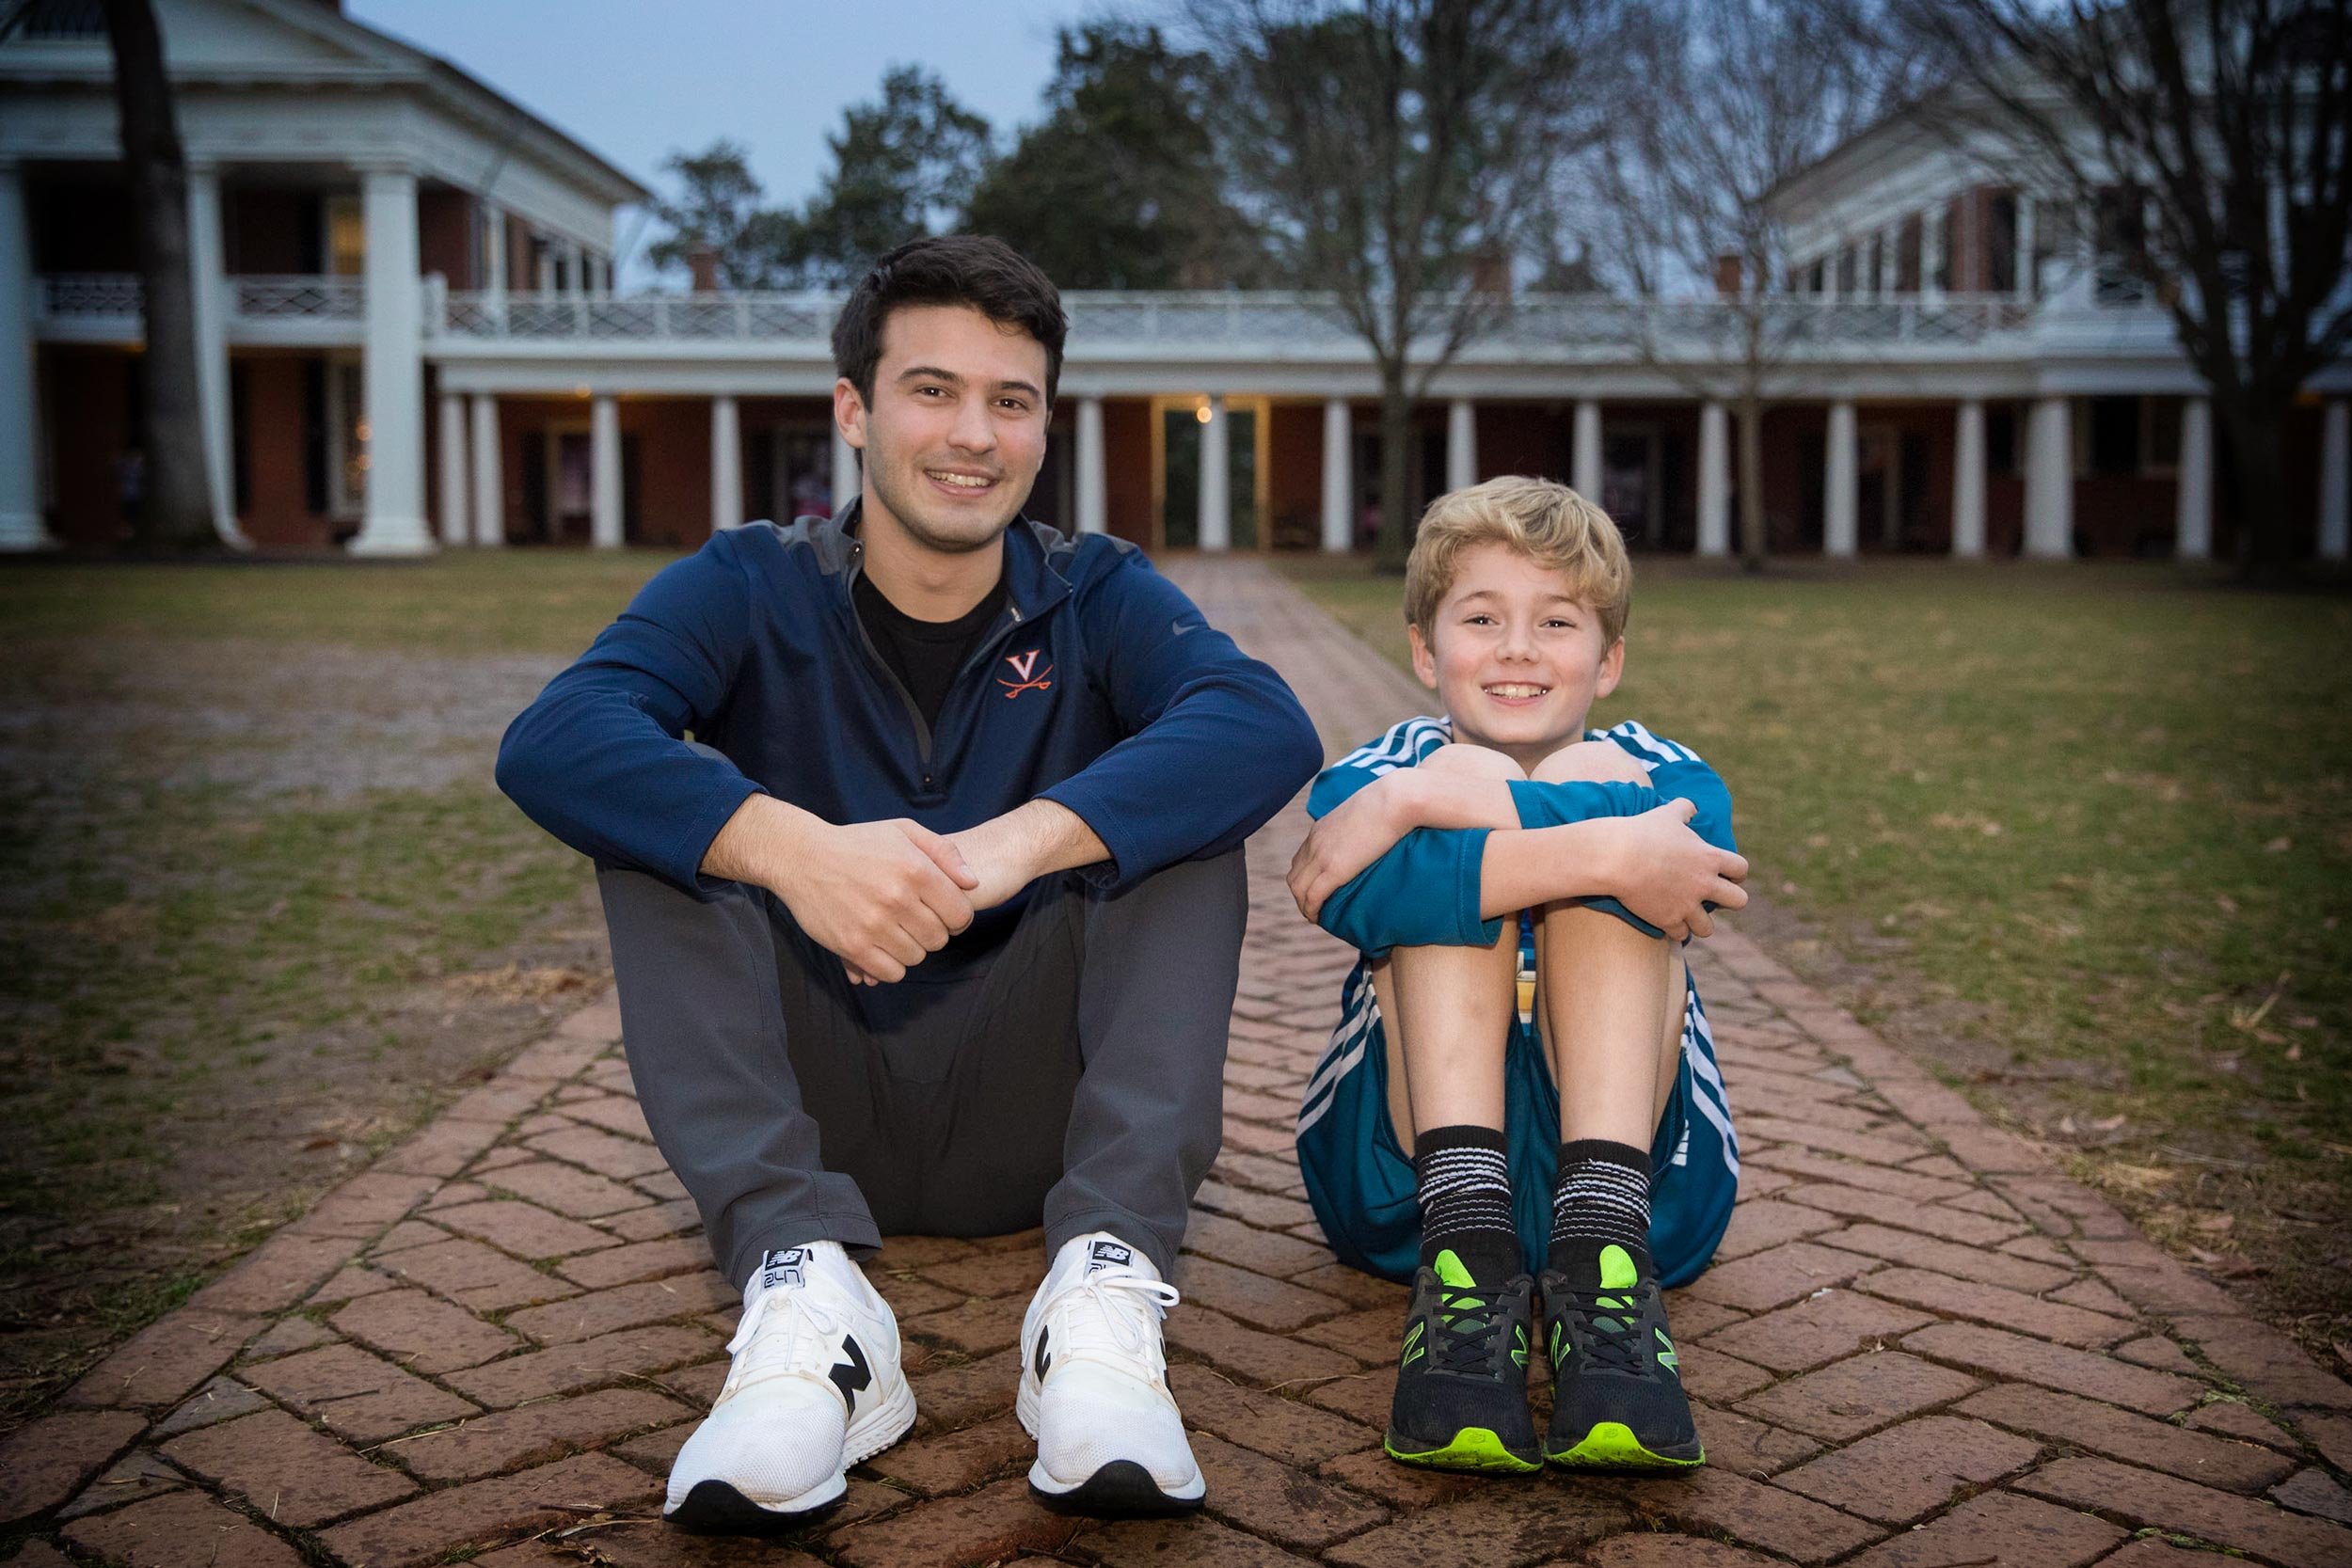 """Fourth-year UVA student Liam Flaherty and his """"little,"""" a 9-year-old boy named Jasper, partake in all sorts of activities on and around Grounds."""